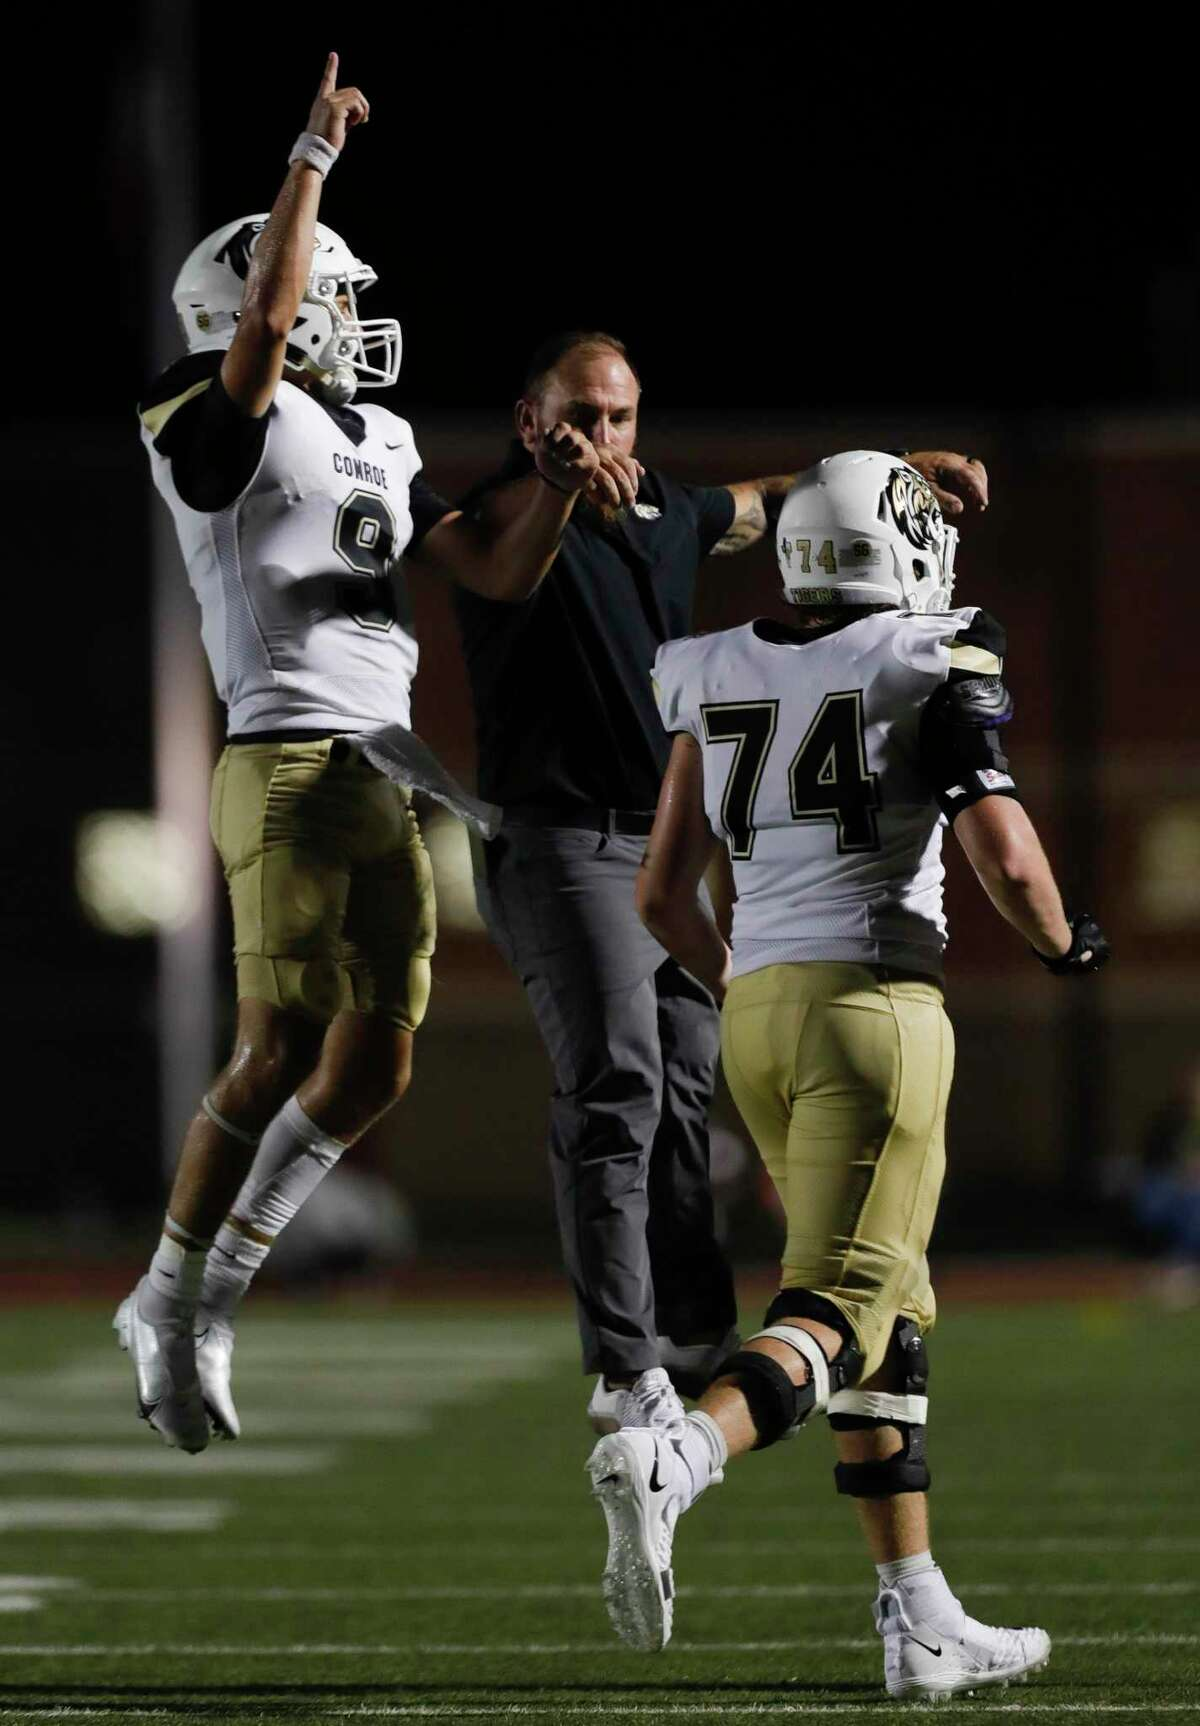 Conroe starting quarterback Clayton Garlock (9) reacts after a touchdown during the third quarter of a non-district high school football game at Turner Stadium, Thursday, Sept. 2, 2021, in Humble.